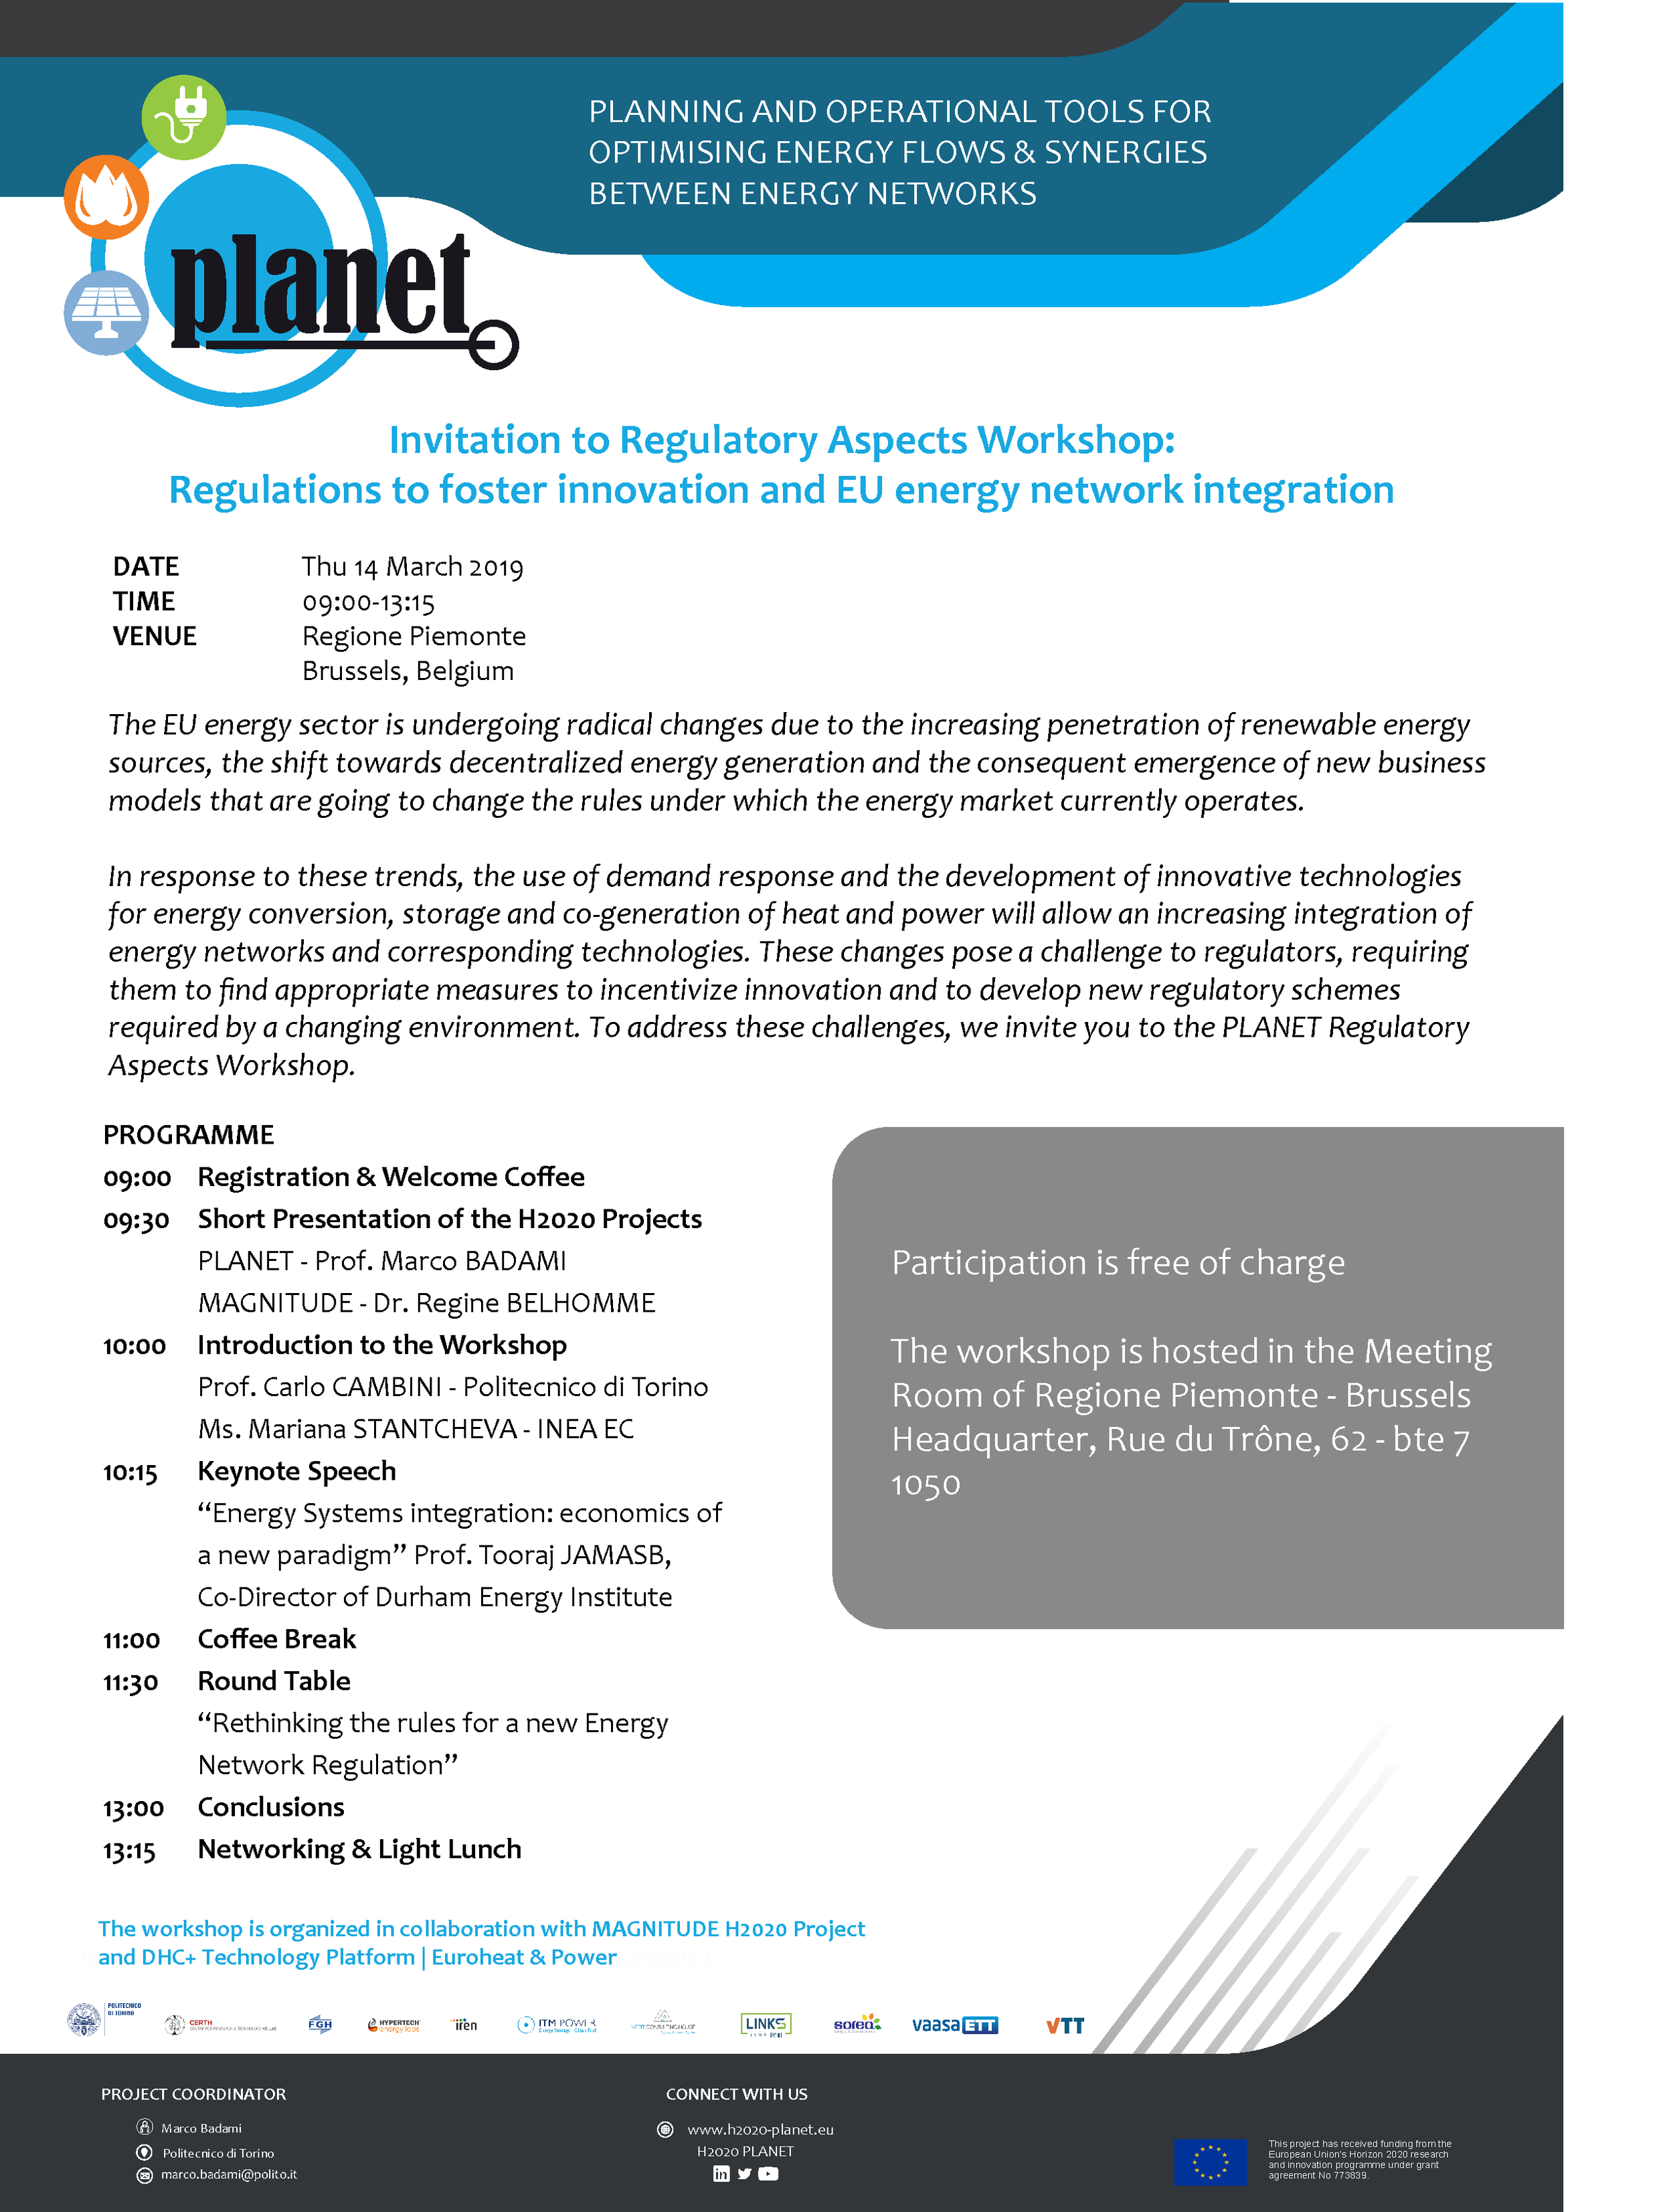 Welcome to Regulatory aspects workshop_image@4x.png